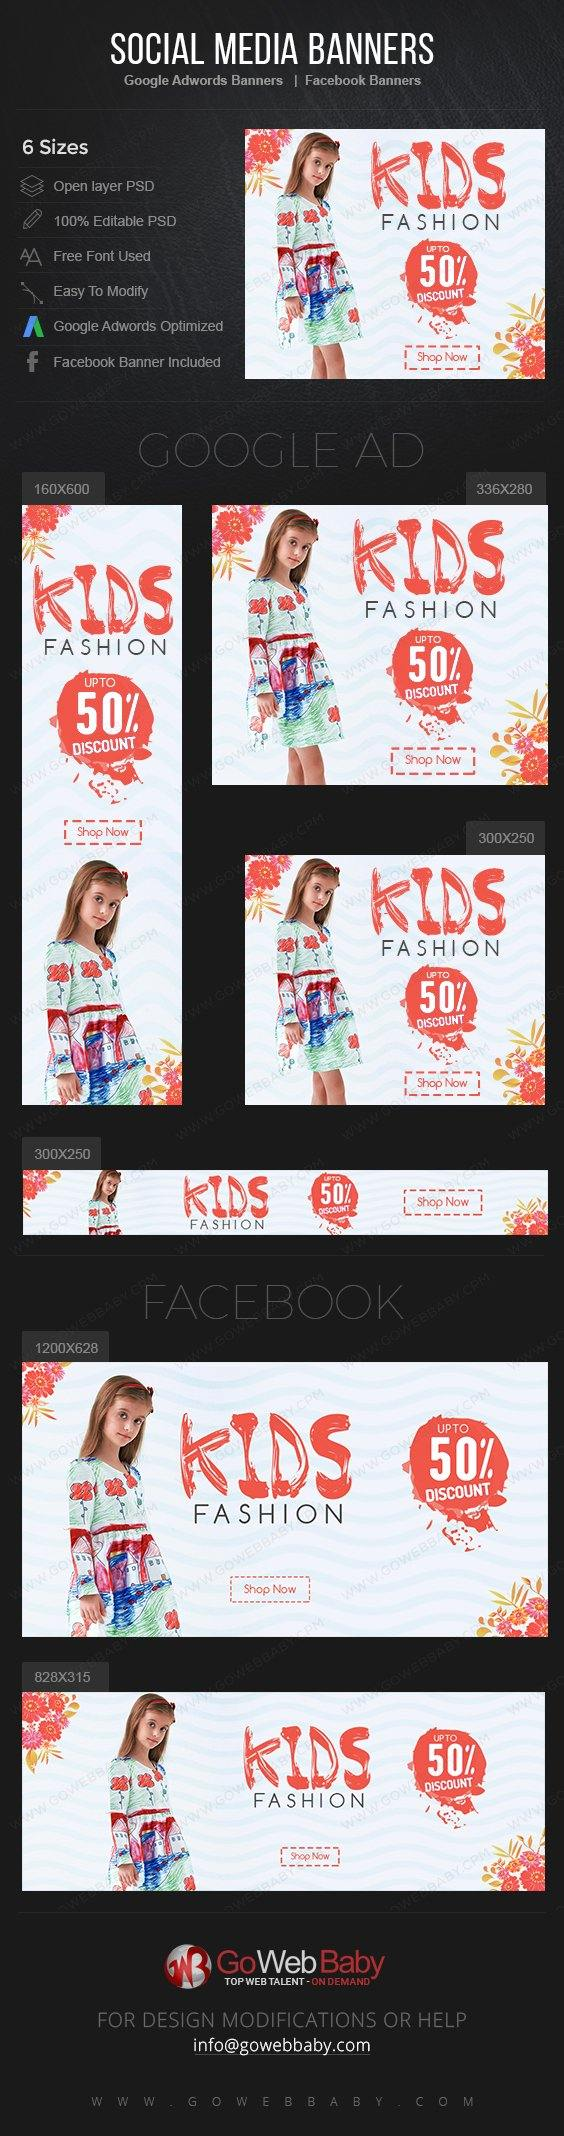 Google Adwords Display Banner with Facebook banners -Kids Fashion For Website Marketing - GoWebBaby.Com